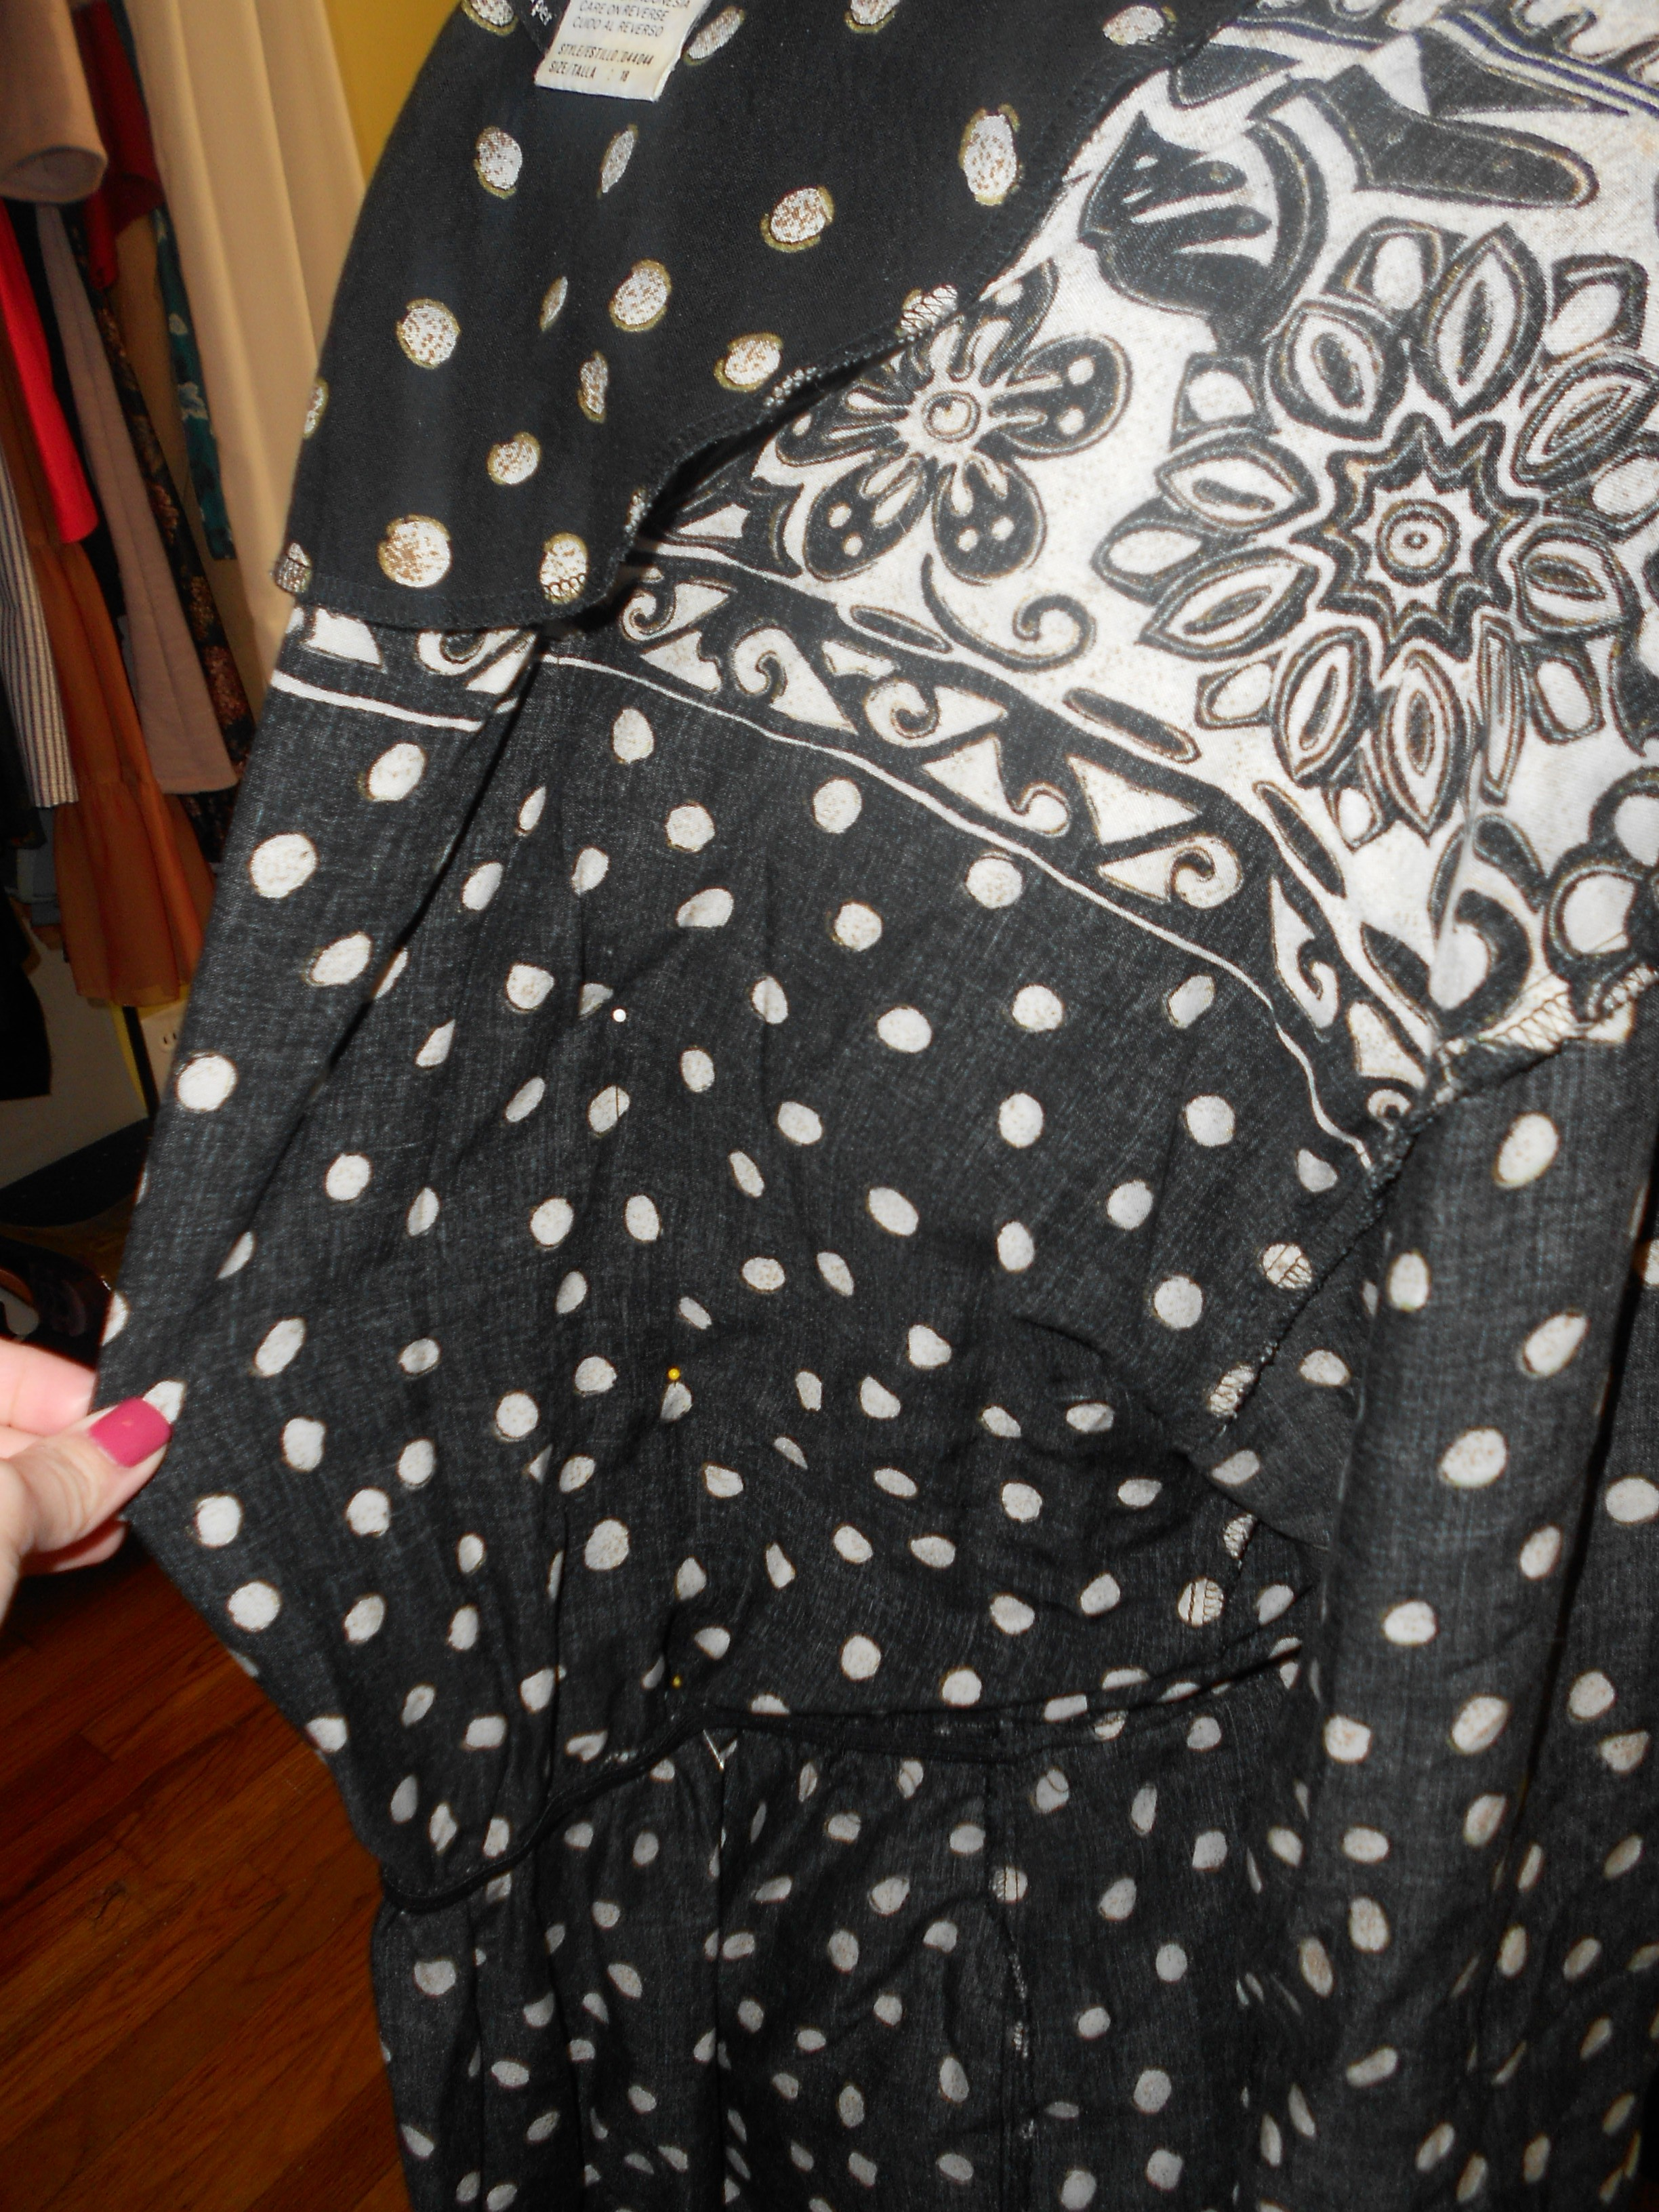 Day 235: Out of the Dark Dress 3